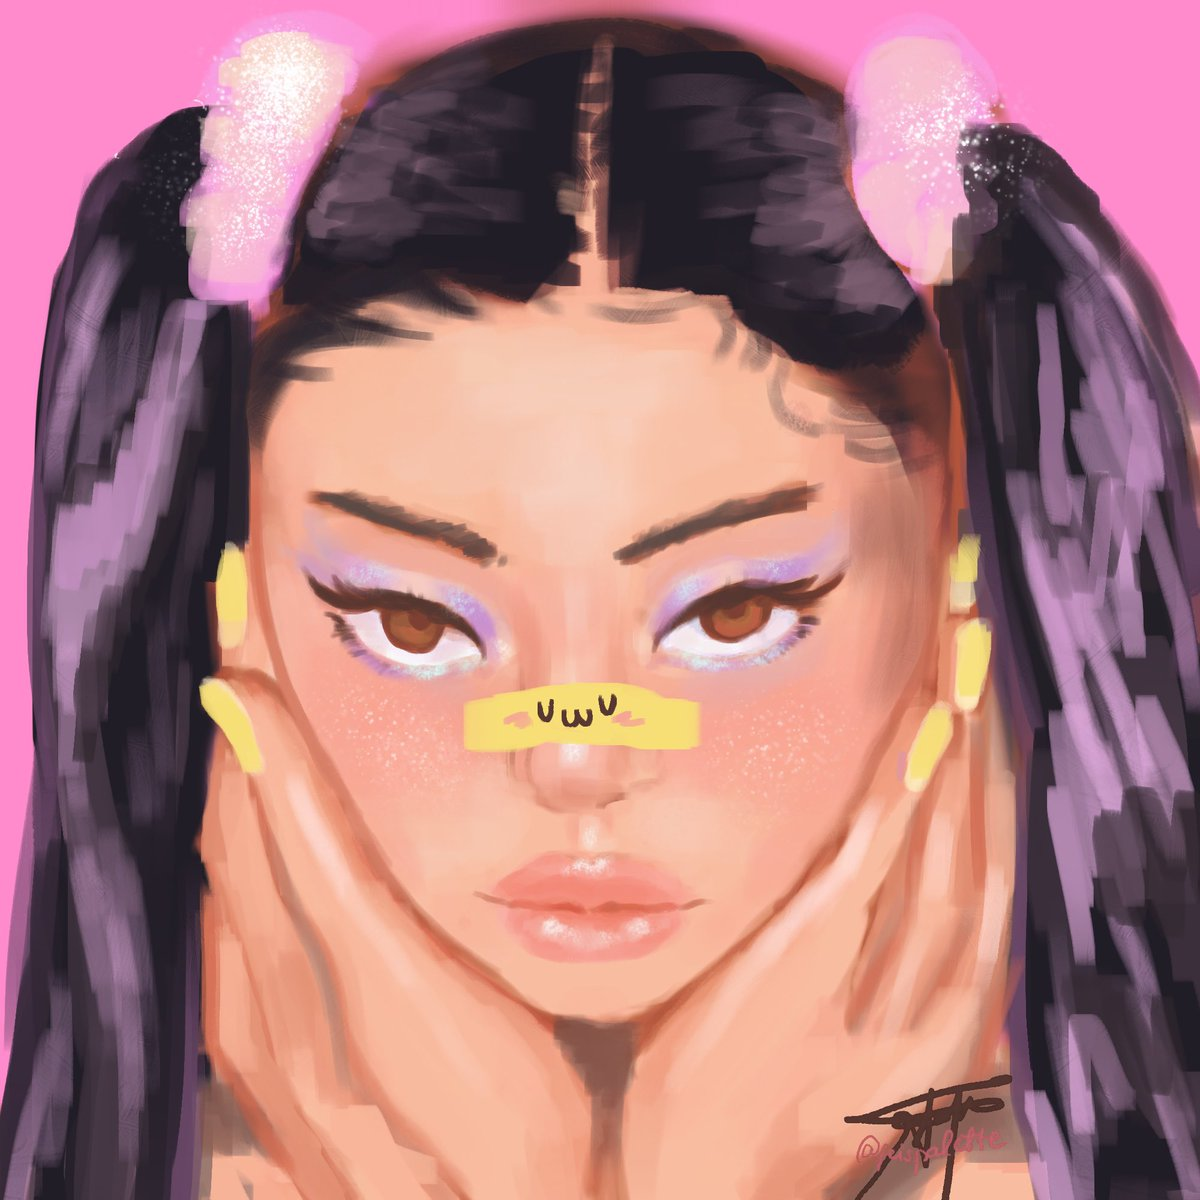 quick portrait study cuz i love procrastinating <3   by quick i mean 2 hrs is pretty quick  #artph #artistsontwitter pic.twitter.com/bo8Sqdcl8U